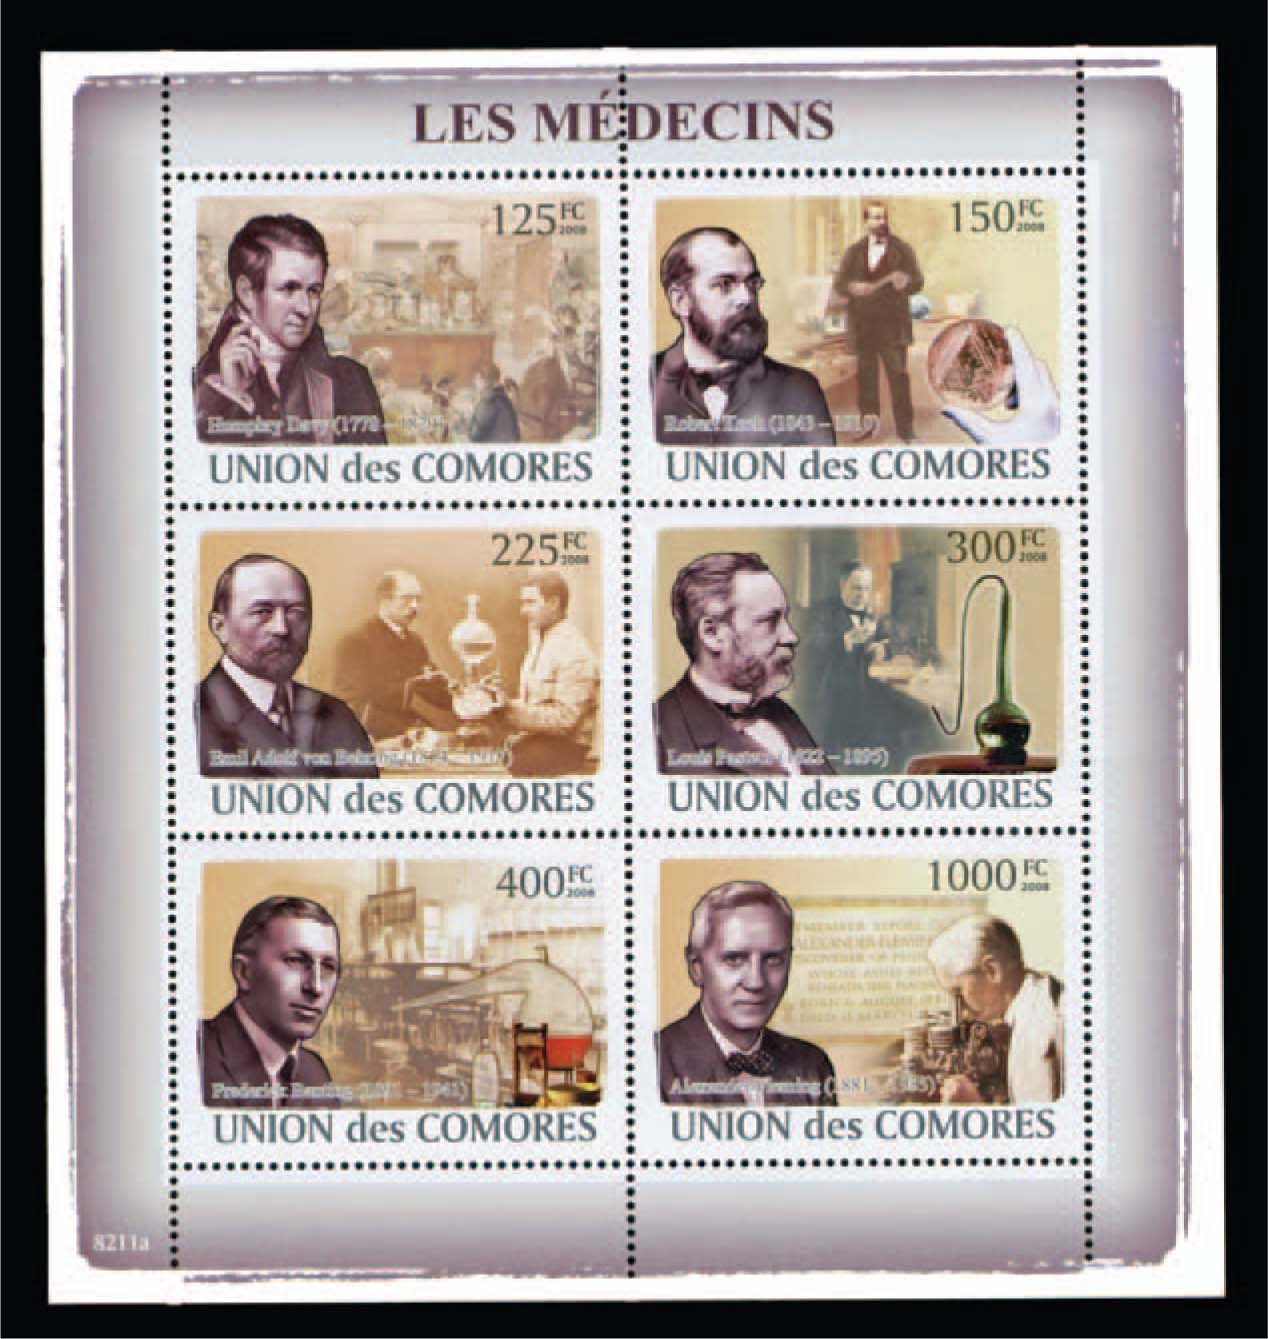 This Stamp Honors Six of the Most Famous Physicians in History. Stamp from the Collection of Dr. Shulman.